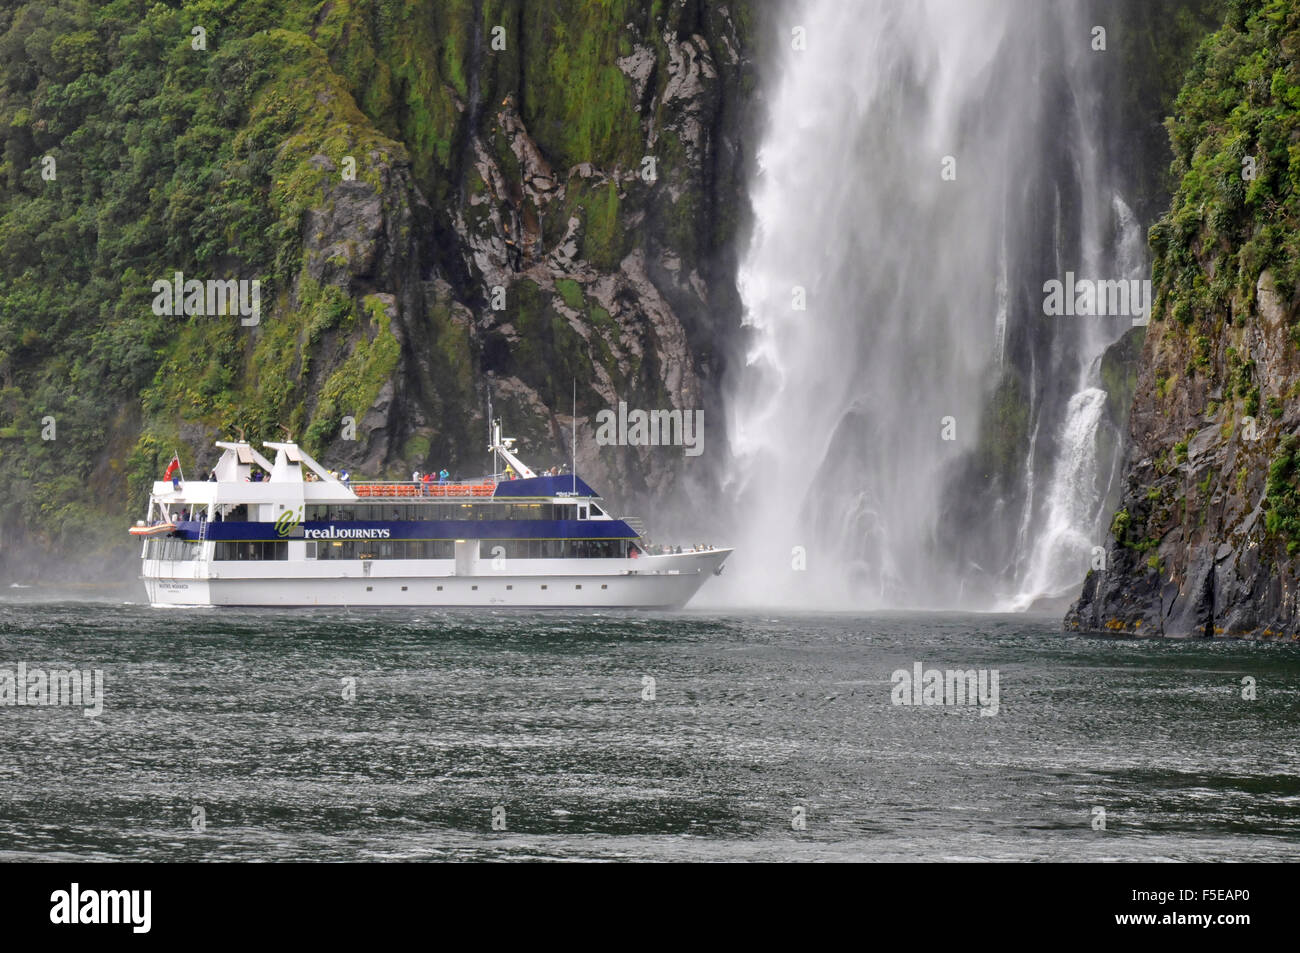 Tour boat near the Stirling waterfall, Milford sound, Fiordland National Park, New Zealand - Stock Image